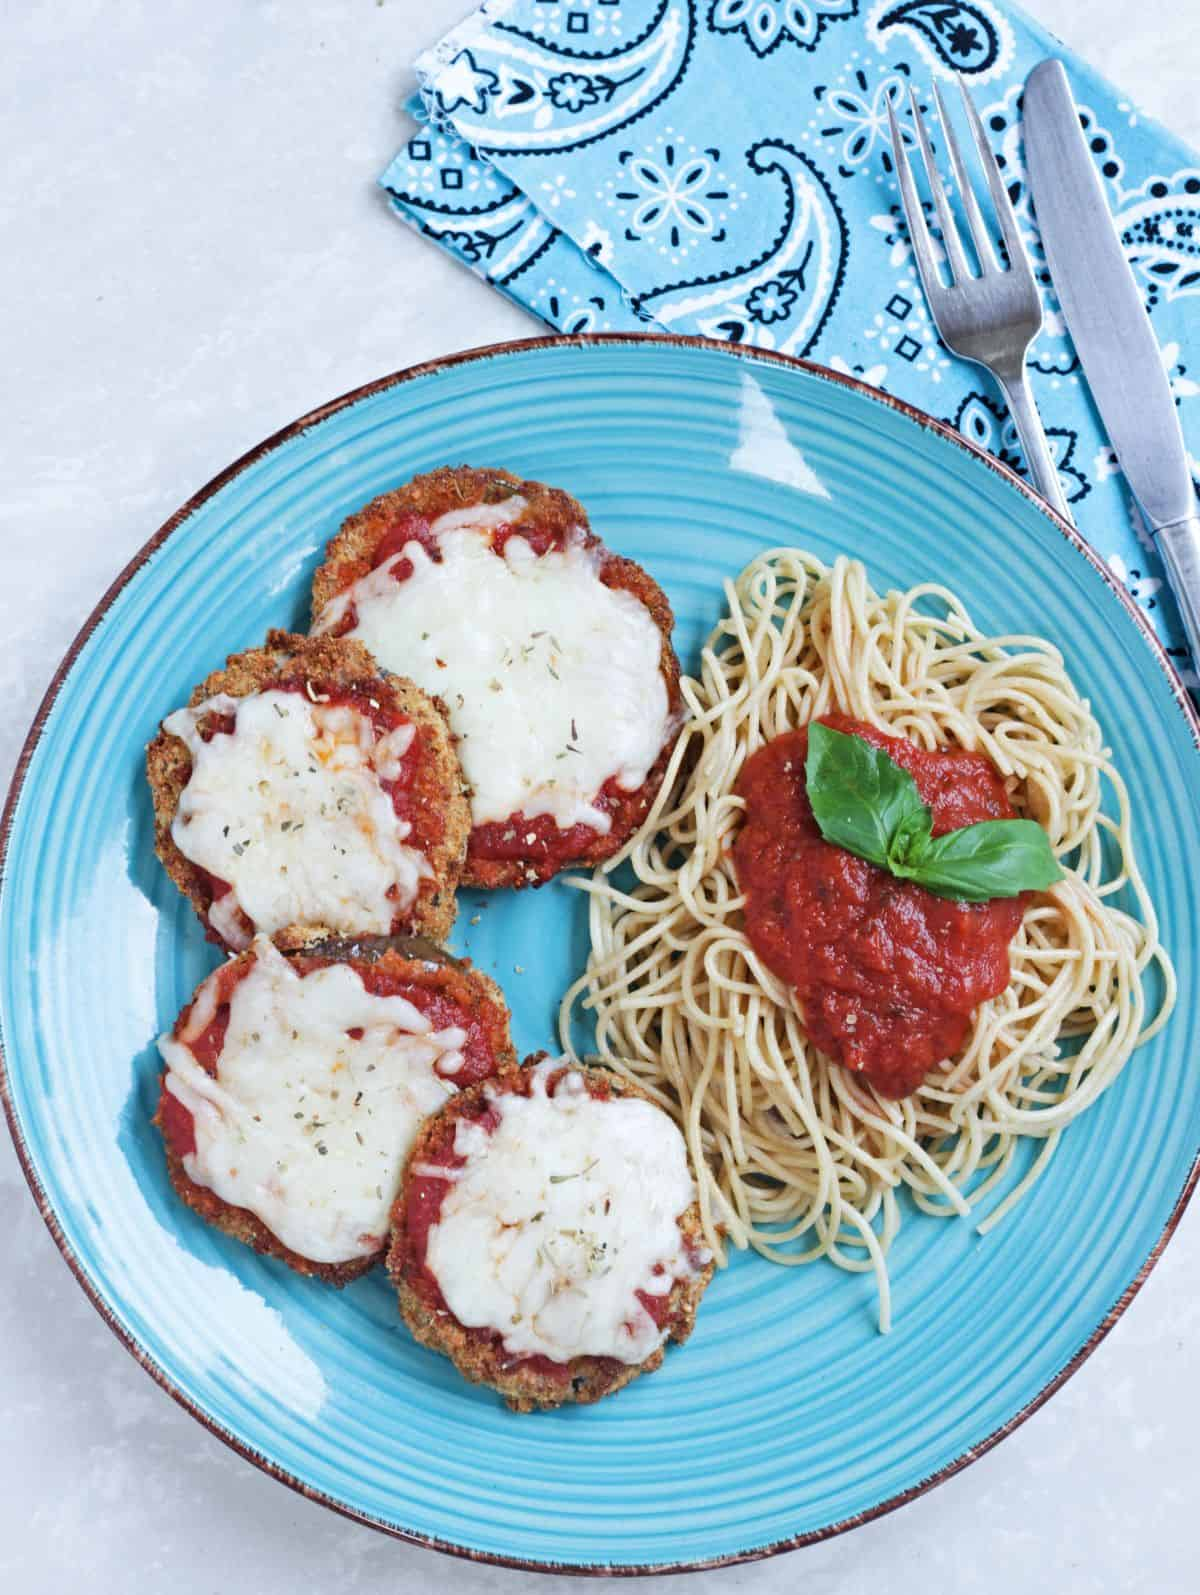 Eggplant parmesan with pasta and sauce in a blue plate